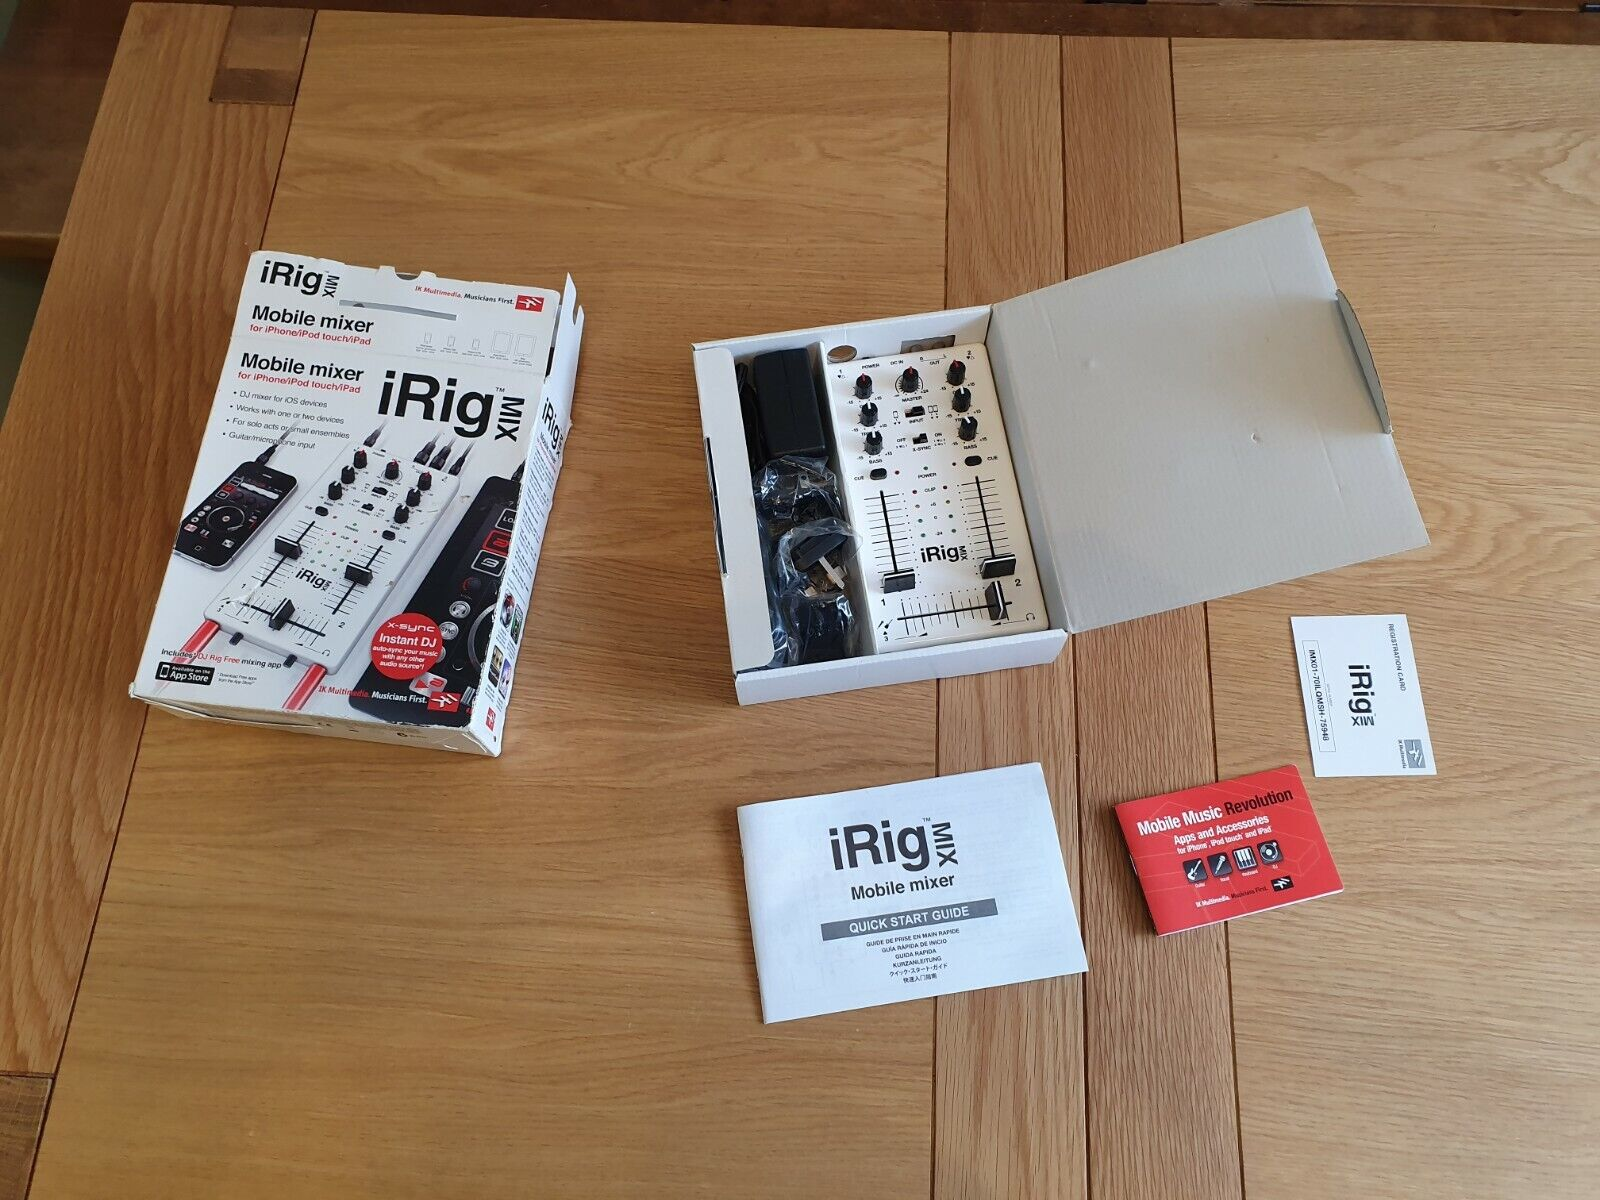 IRig Mix Mobile Mixer for iPhone iPod touch iPad boxed